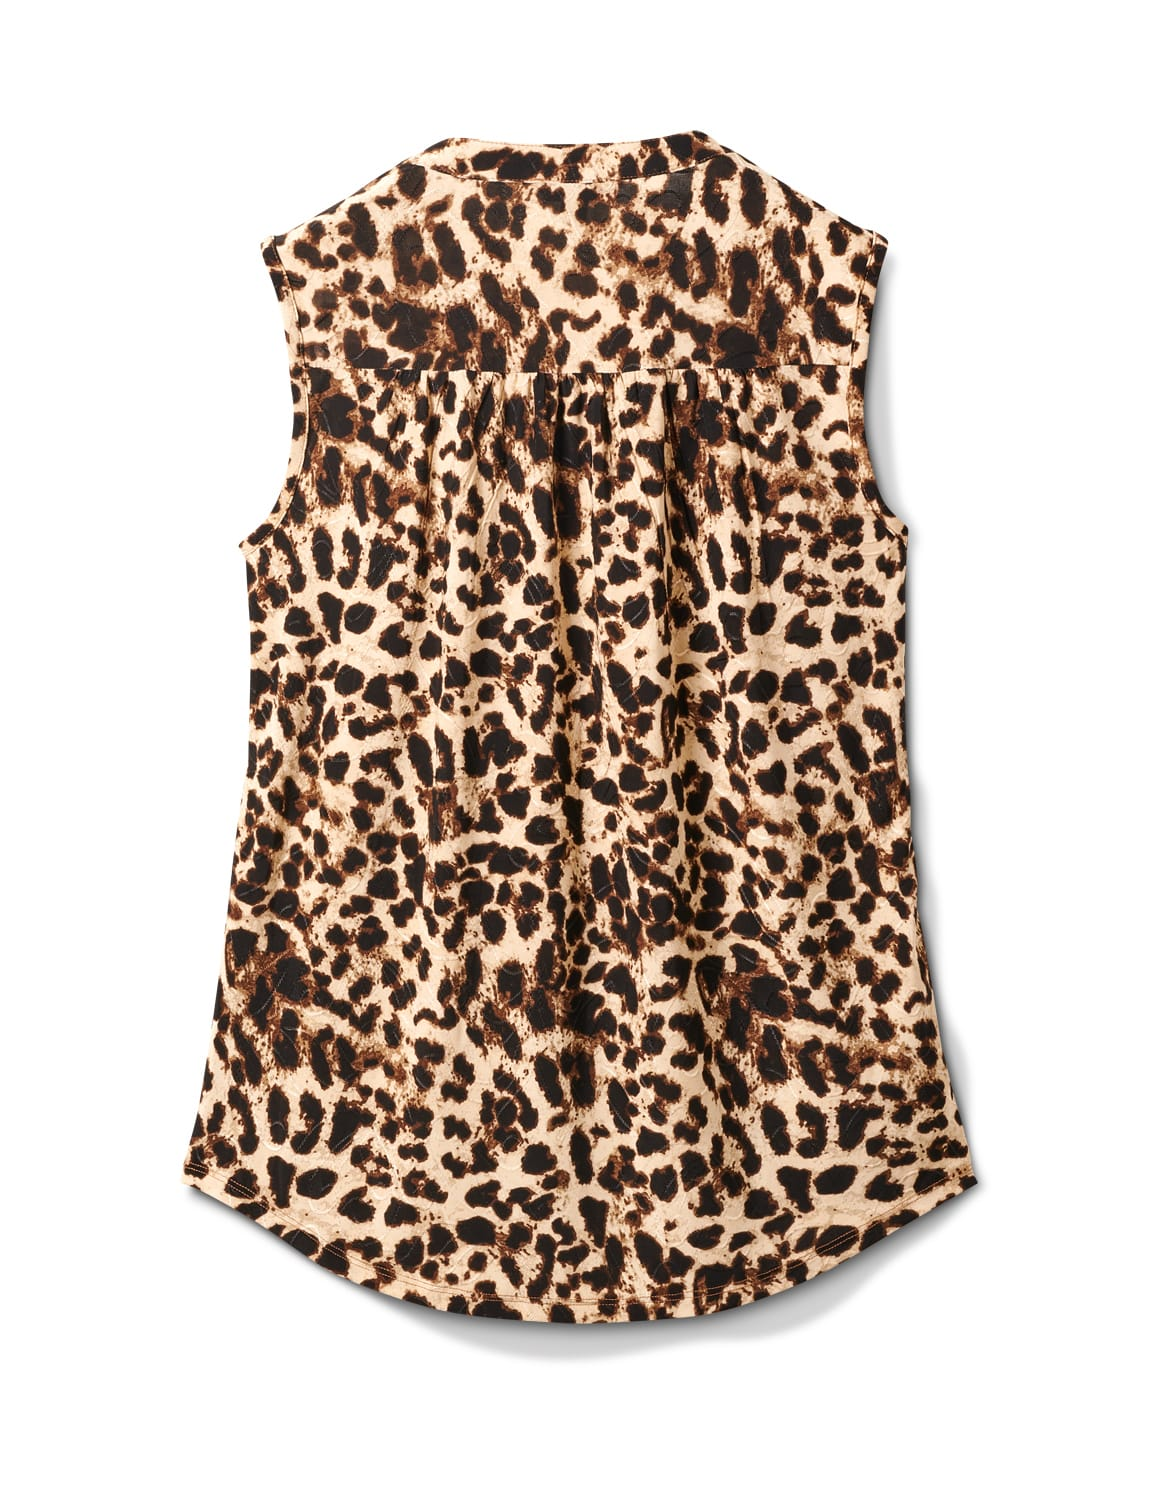 Animal Sleeveless Knit Popover - Brown/Ivory - Back